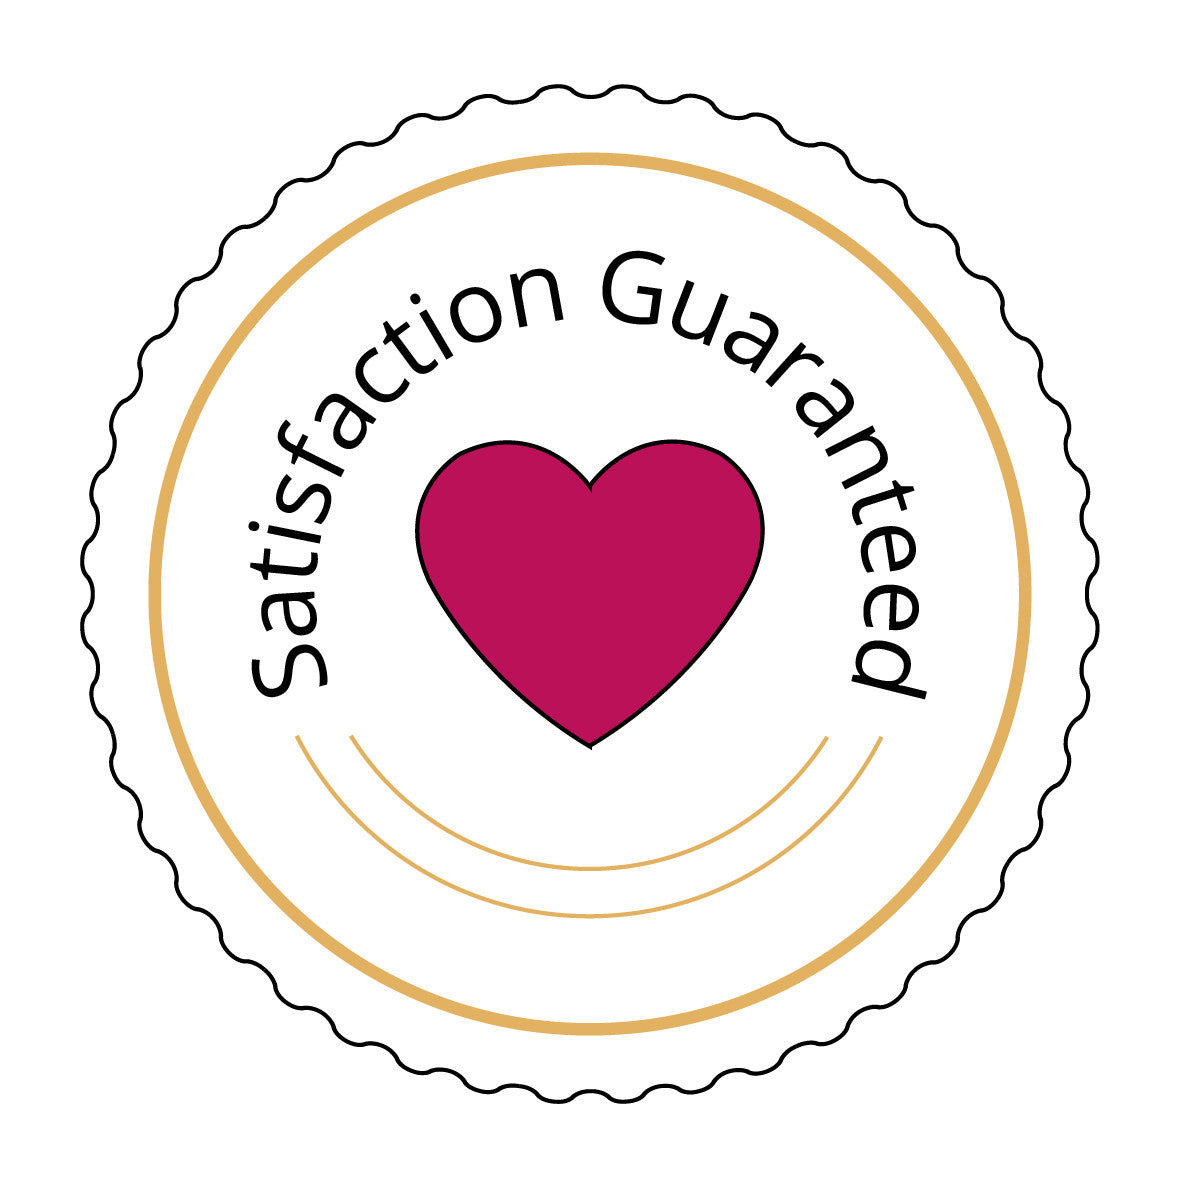 Your satisfaction is guaranteed - sustainable fashion